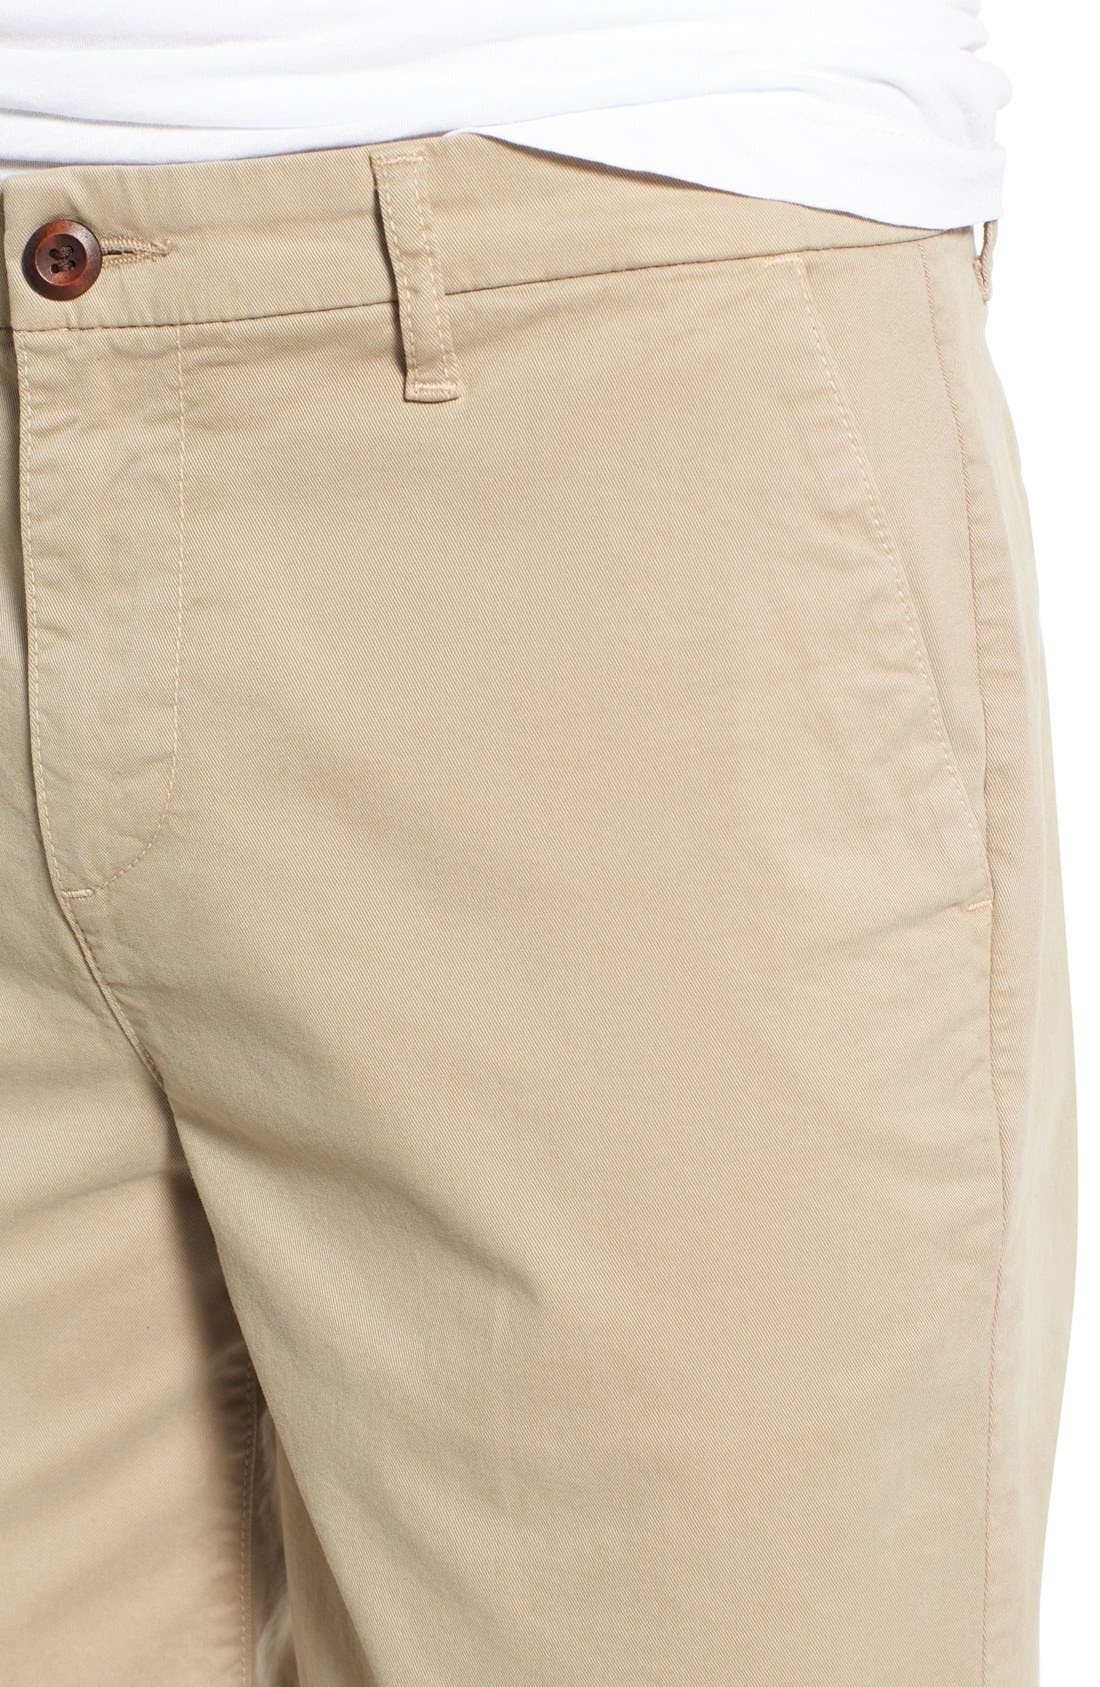 'Thompson' Slim Fit Shorts,                             Alternate thumbnail 3, color,                             240